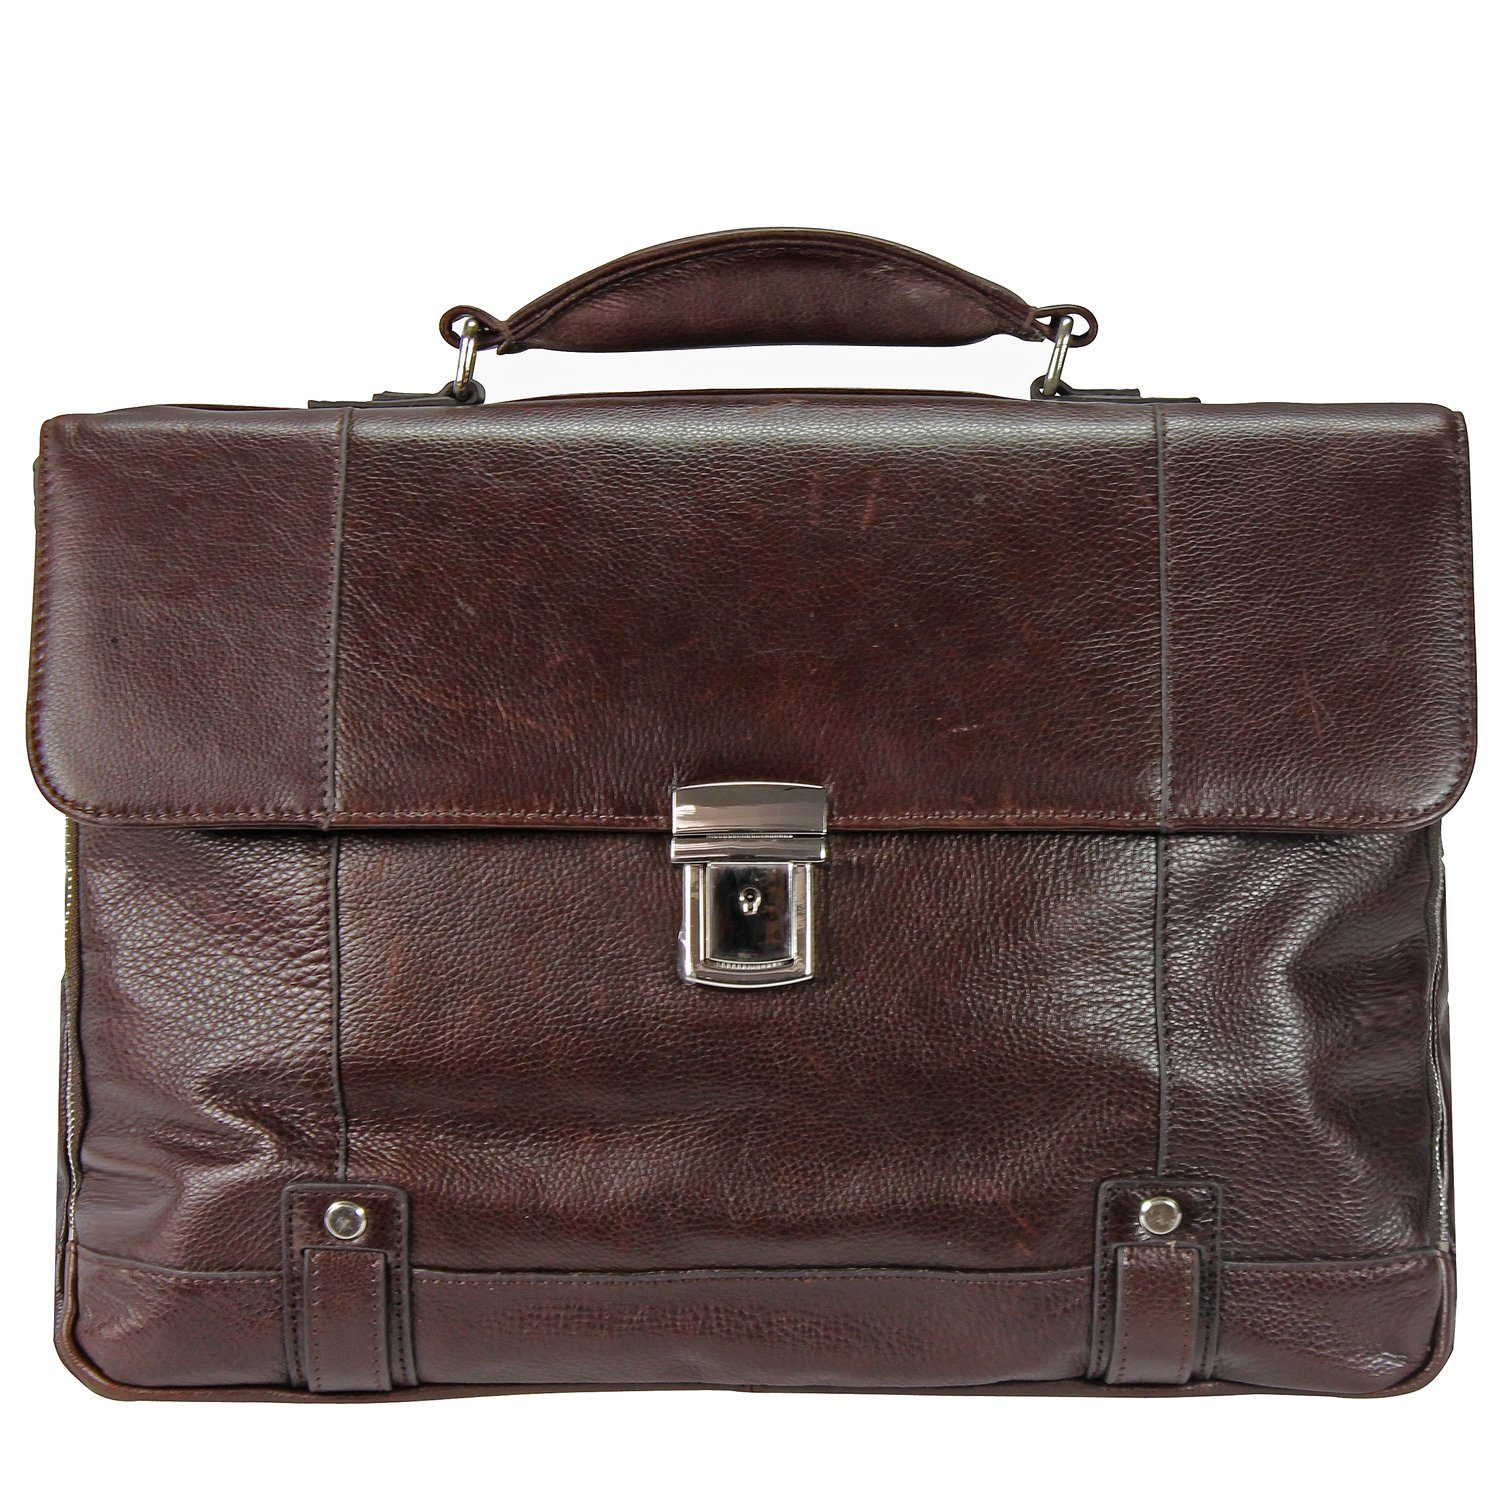 d & n Classic Brown Aktentasche Leder 40 cm Laptopfach